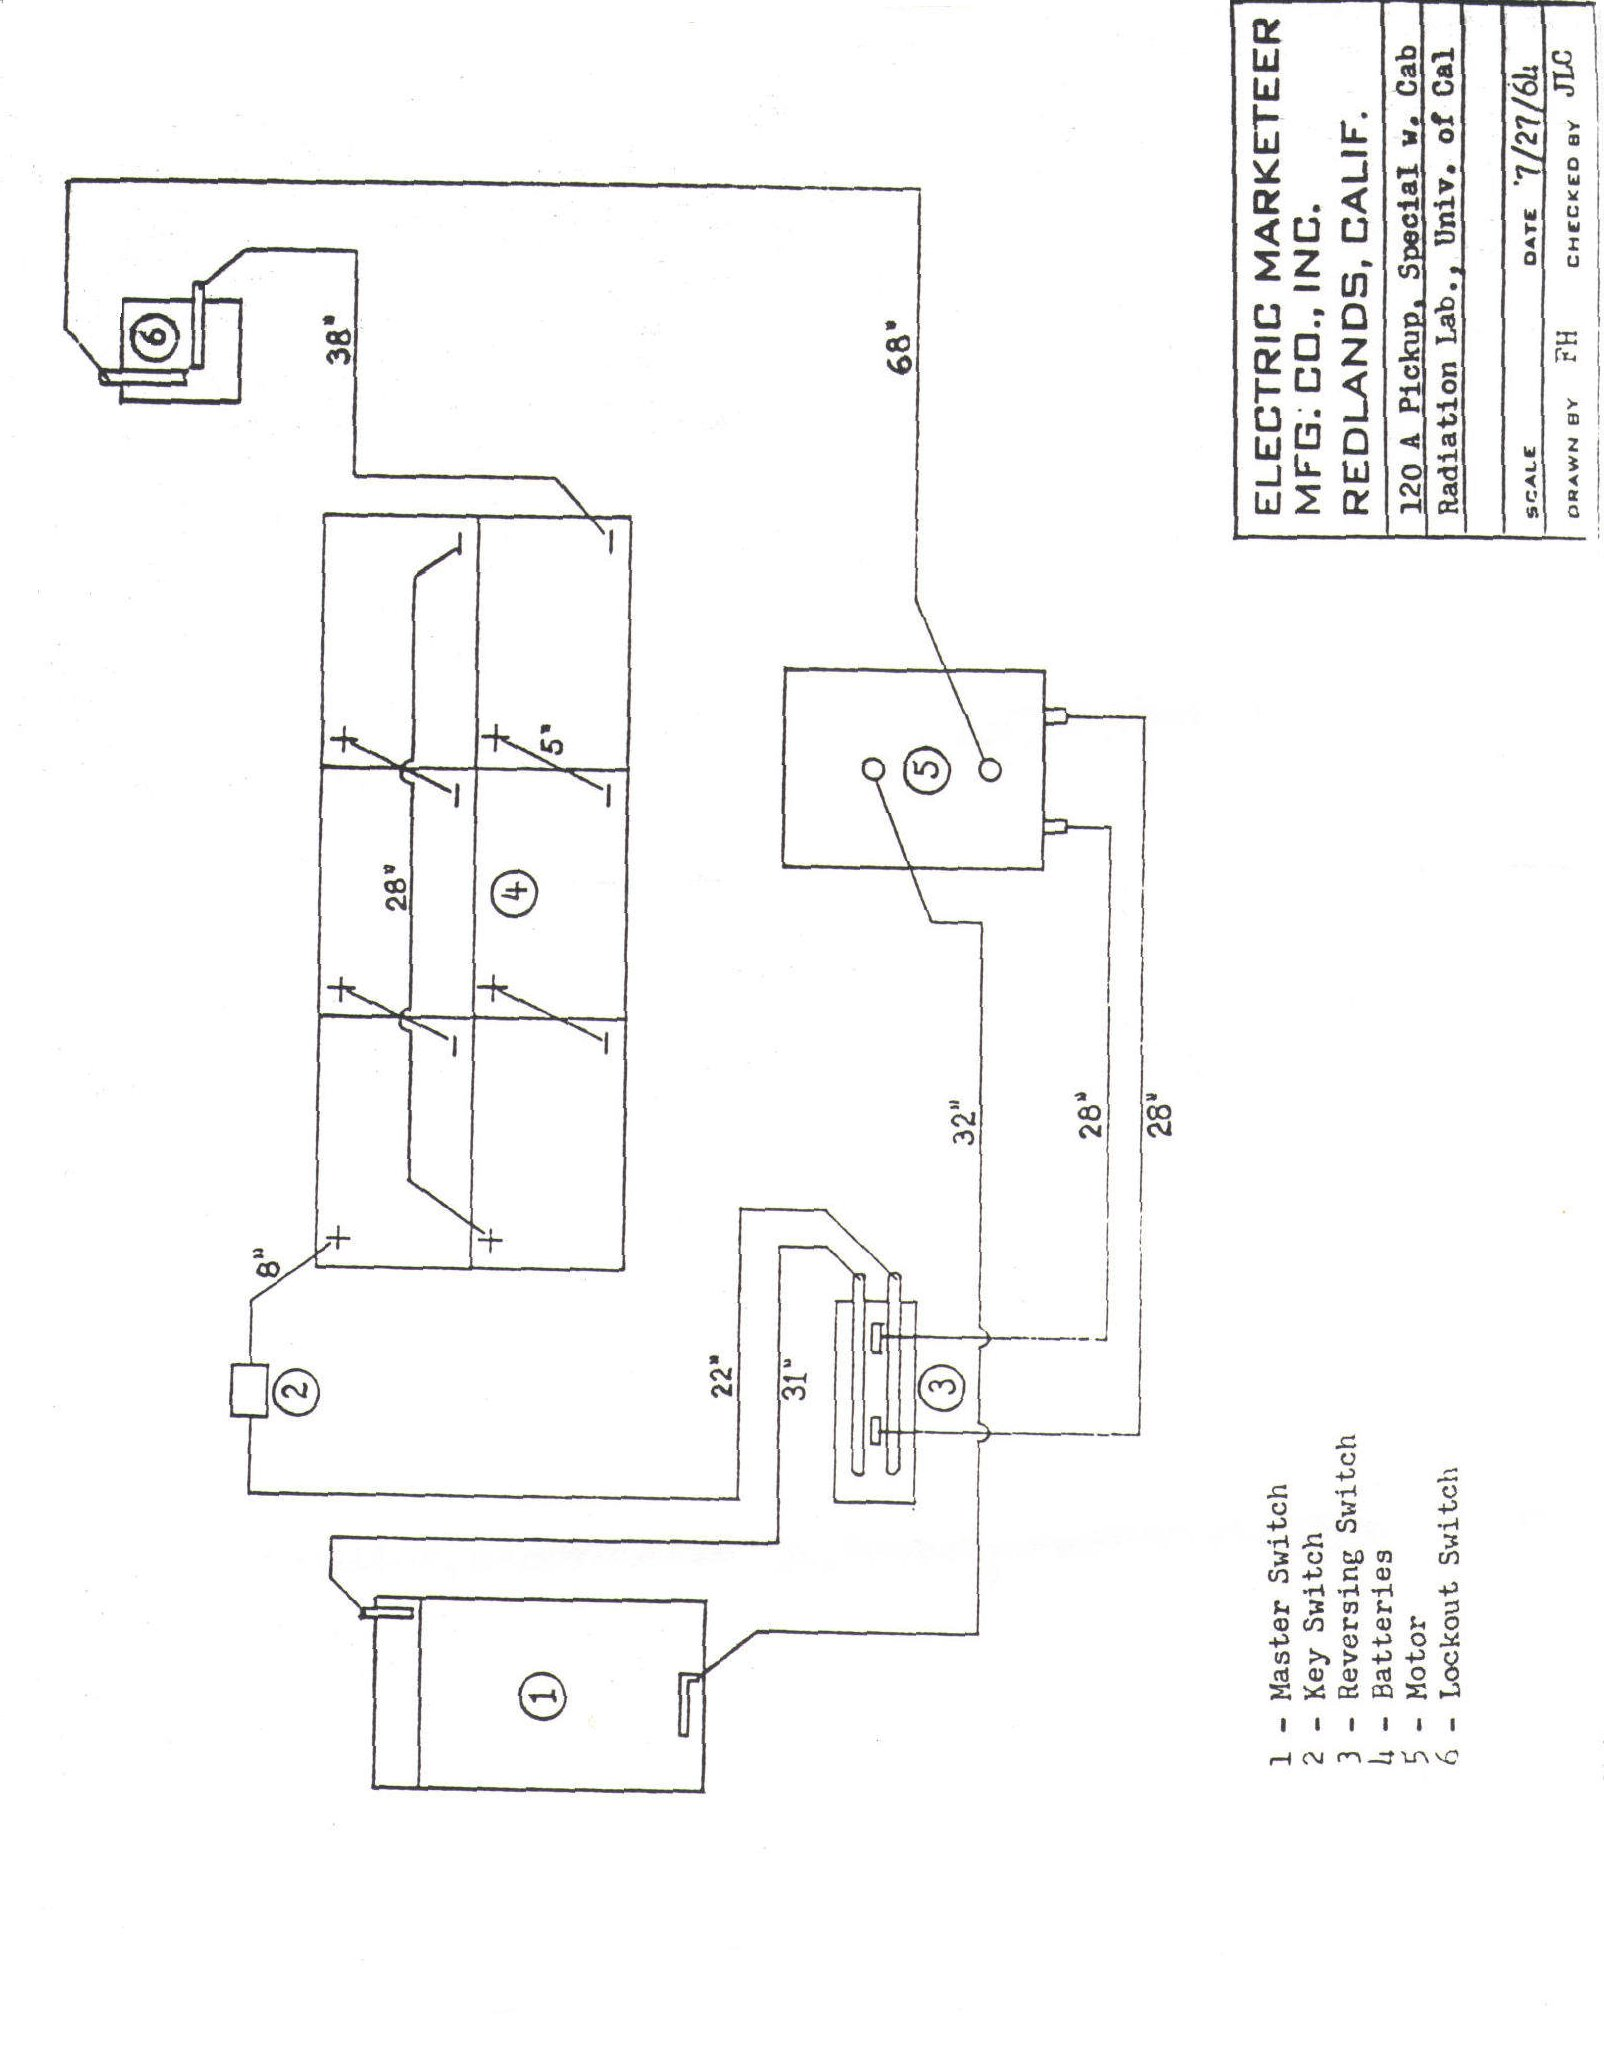 Melex Model 112 Wiring Diagram Auto Electrical 2002 Dodge Stratus Power Window Switch Related With